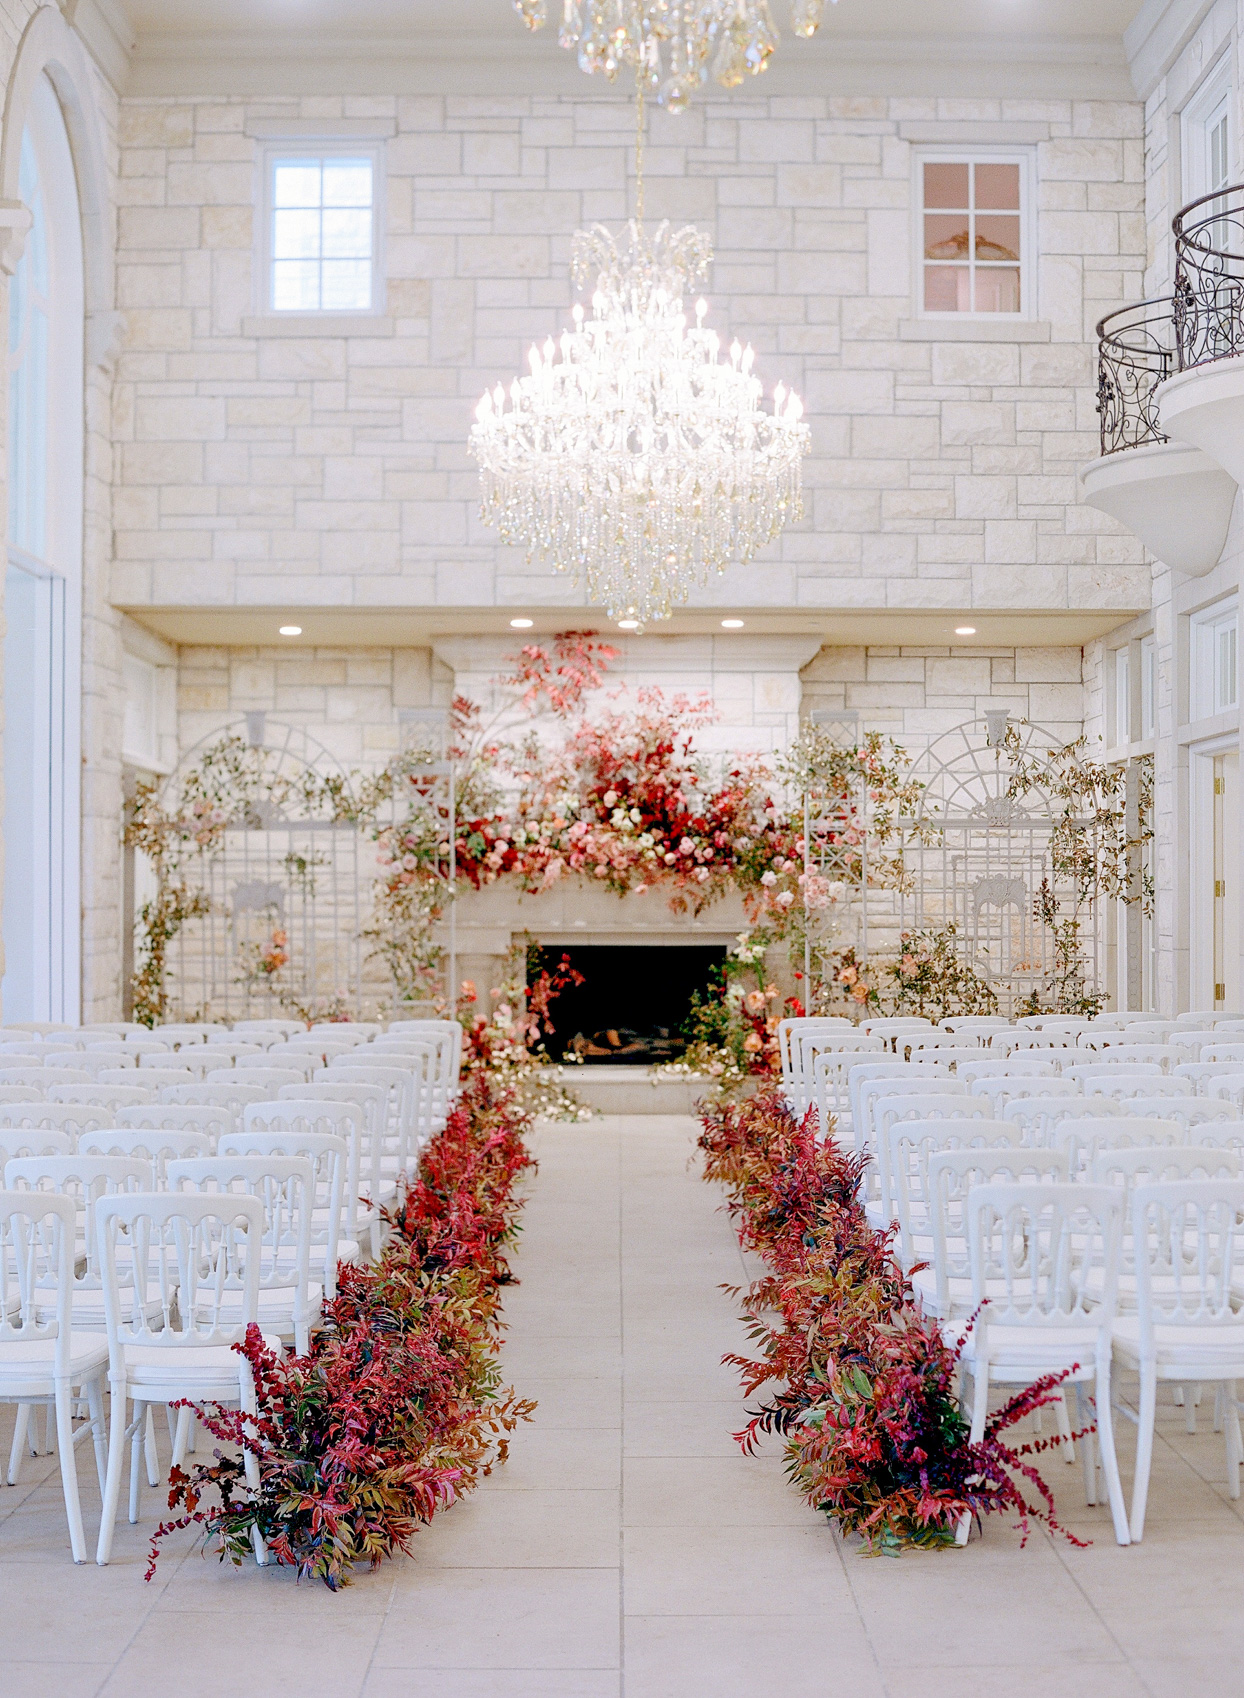 elegant indoor wedding ceremony set up with white chairs and red bouquets